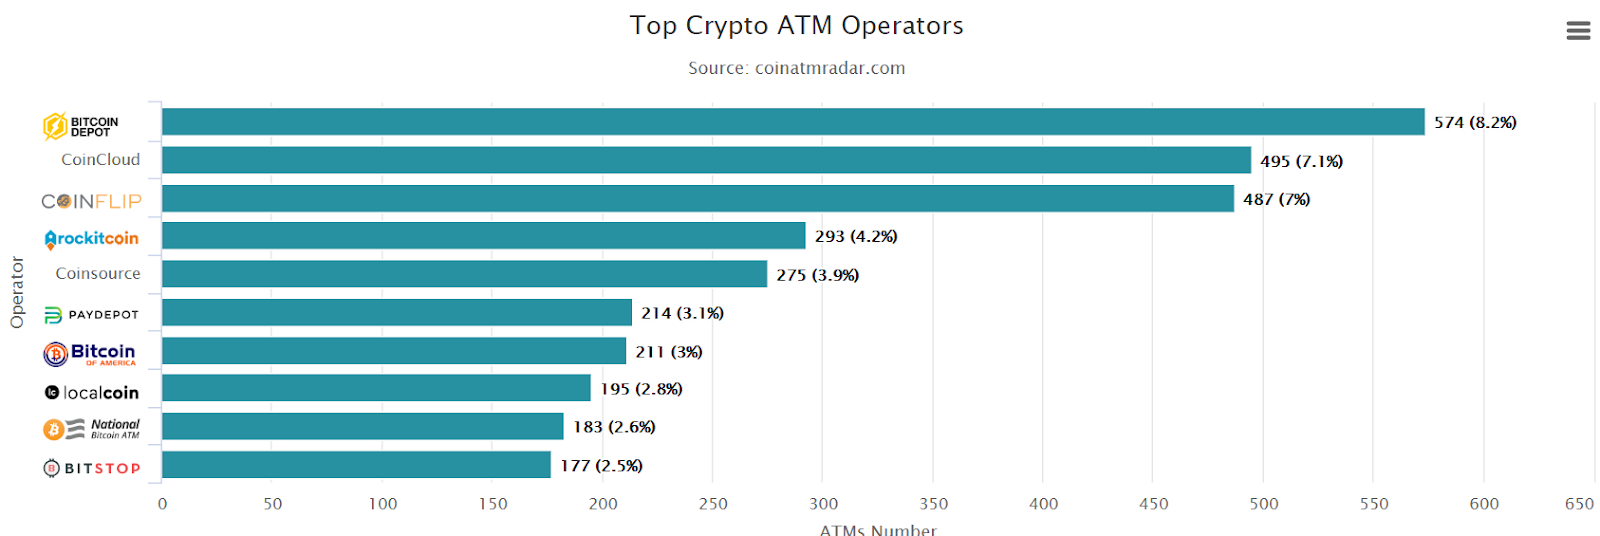 crypto atm manufacturer and operator